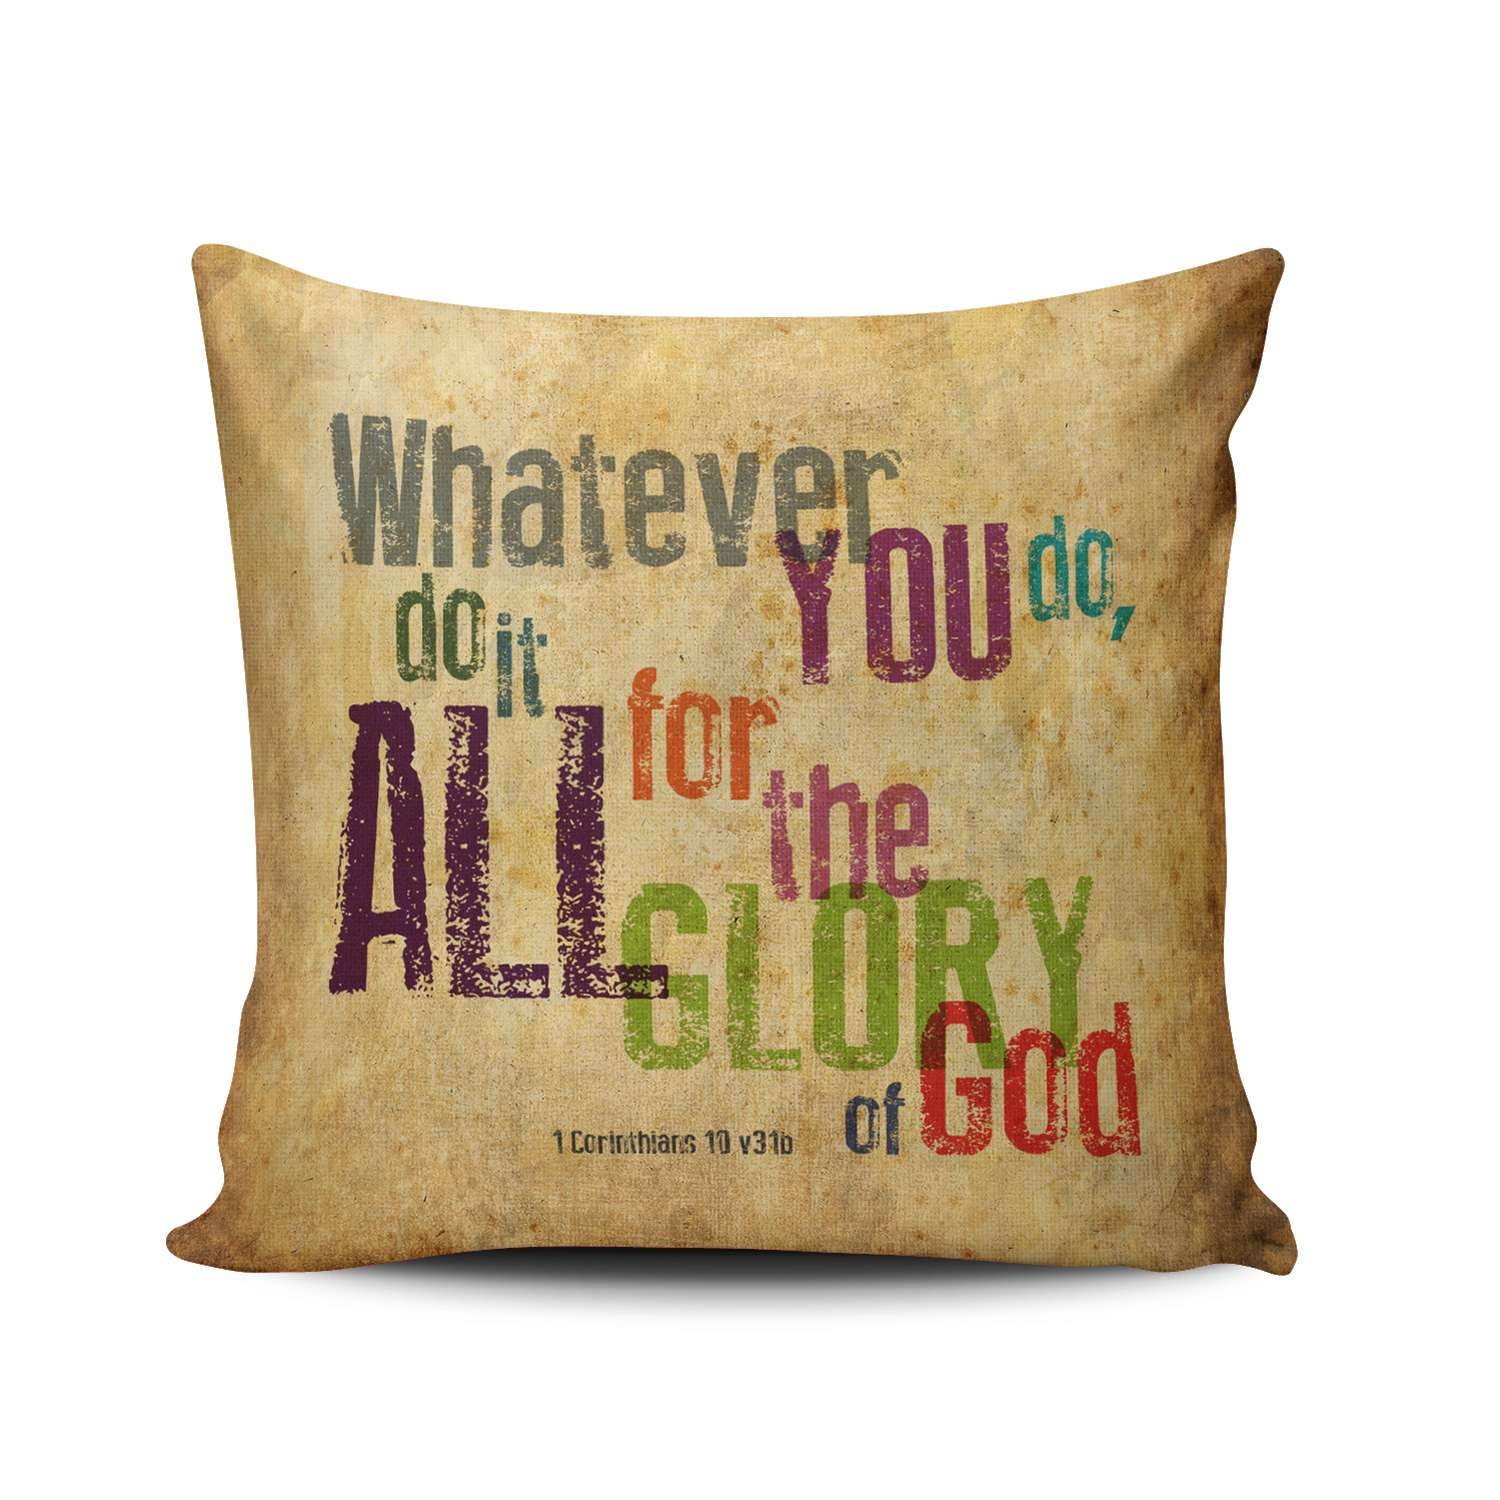 KEIBIKE Pillow Case Christian Bible Verse Quotes - Whatever You Do, Do It All For the Glory of God Personalized Pillowcases Design Decorative Throw Pillow Covers Cases Euro Square 26x26 Inches